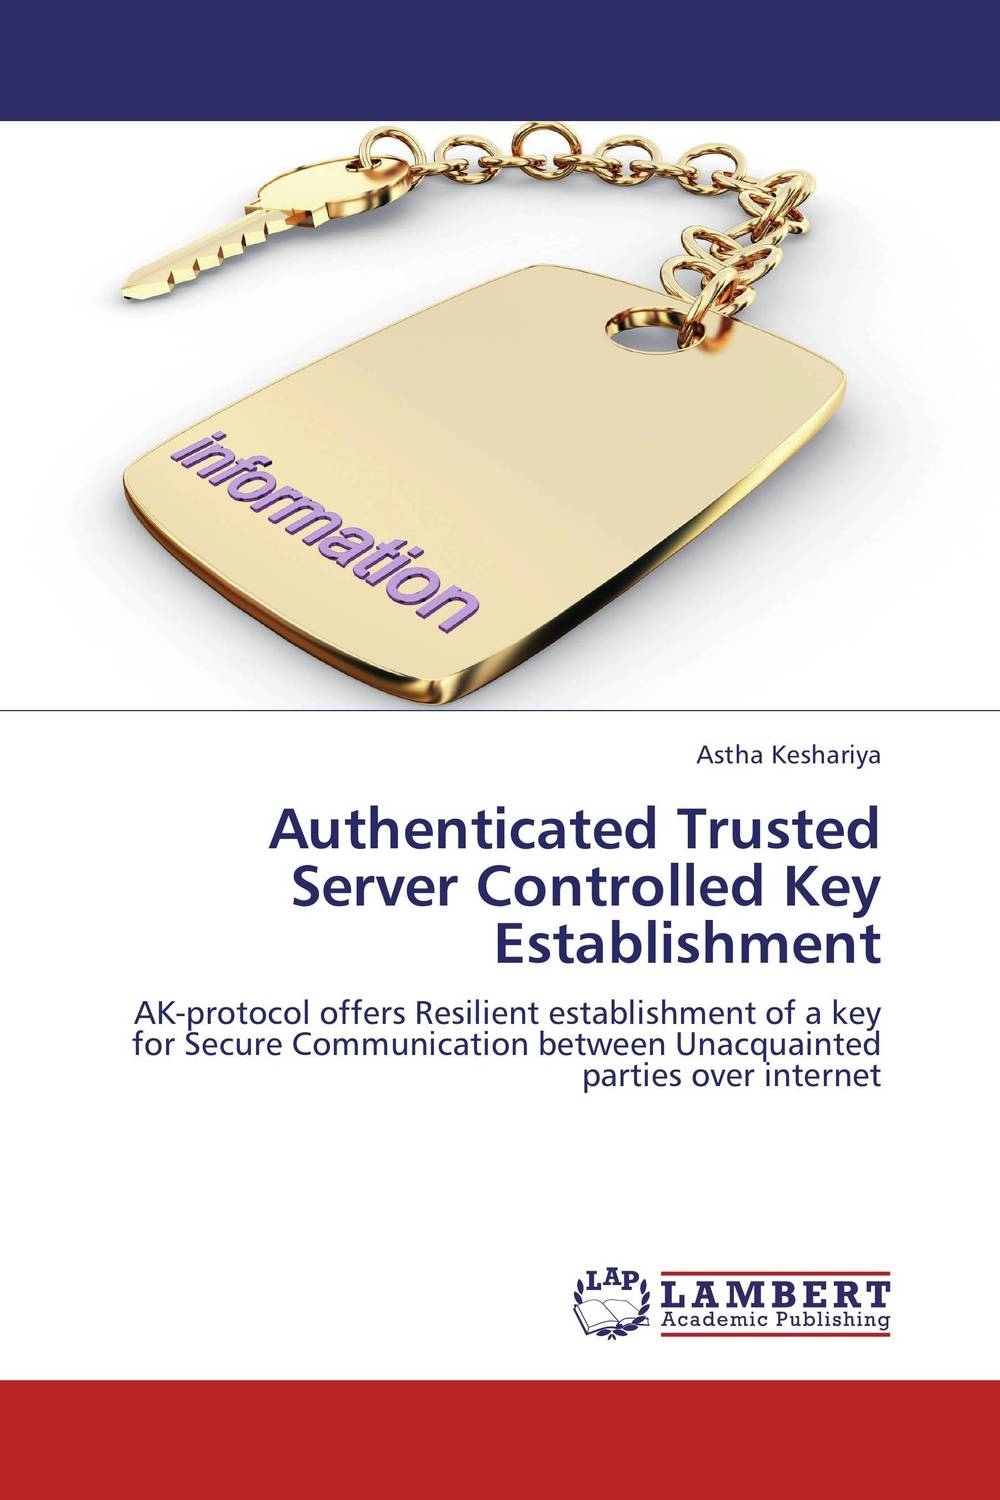 Authenticated Trusted Server Controlled Key Establishment belousov a security features of banknotes and other documents methods of authentication manual денежные билеты бланки ценных бумаг и документов